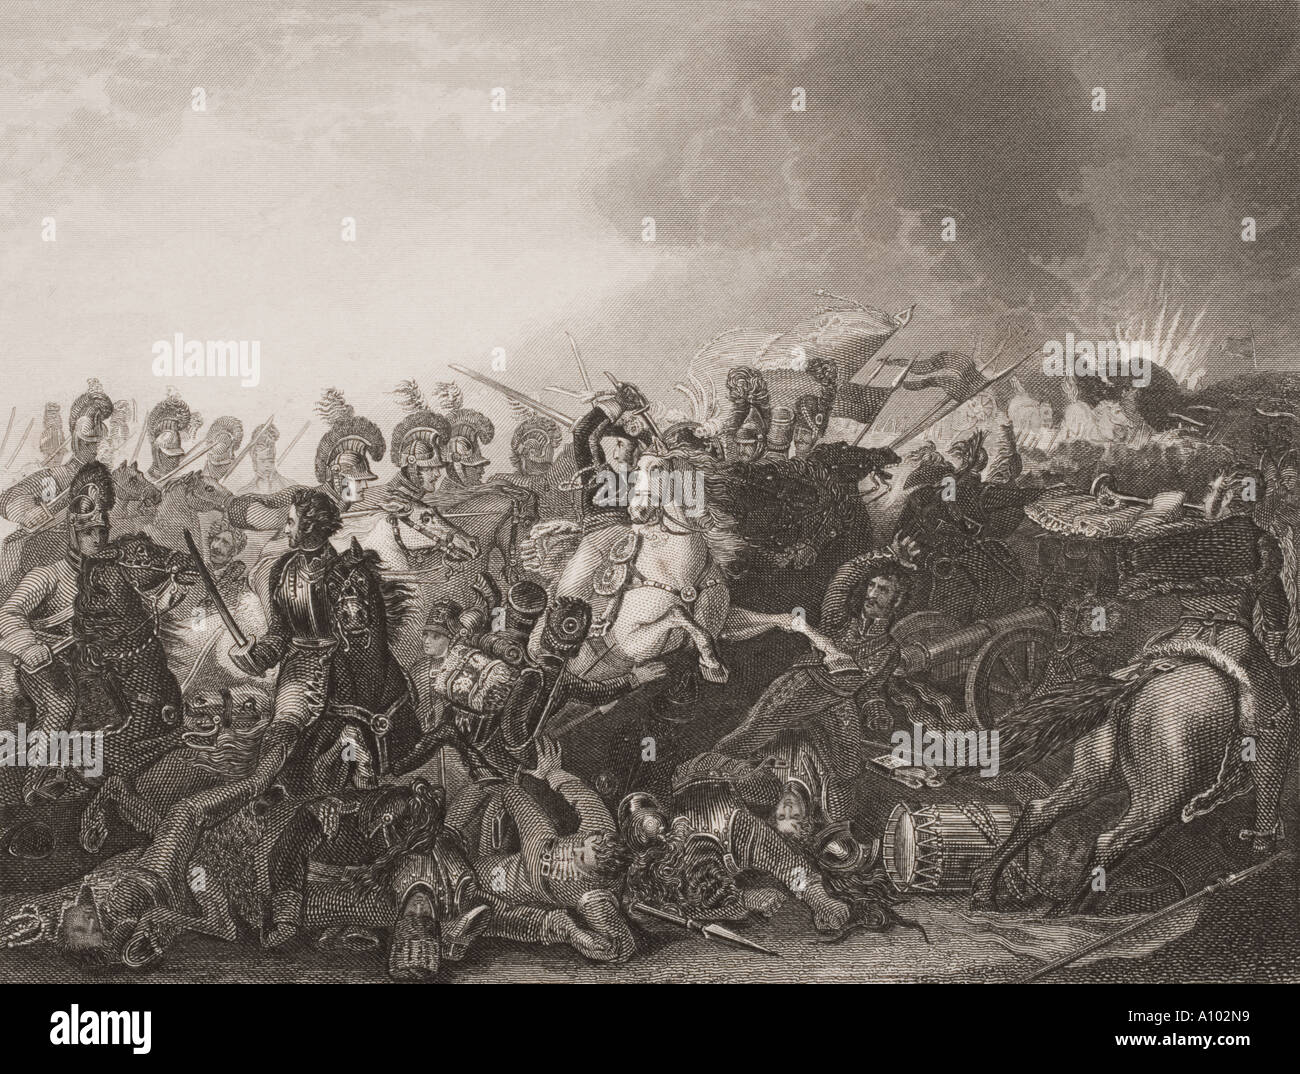 The decisive charge of the Life Guards at the Battle of Waterloo Belgium 18th June 1815 - Stock Image